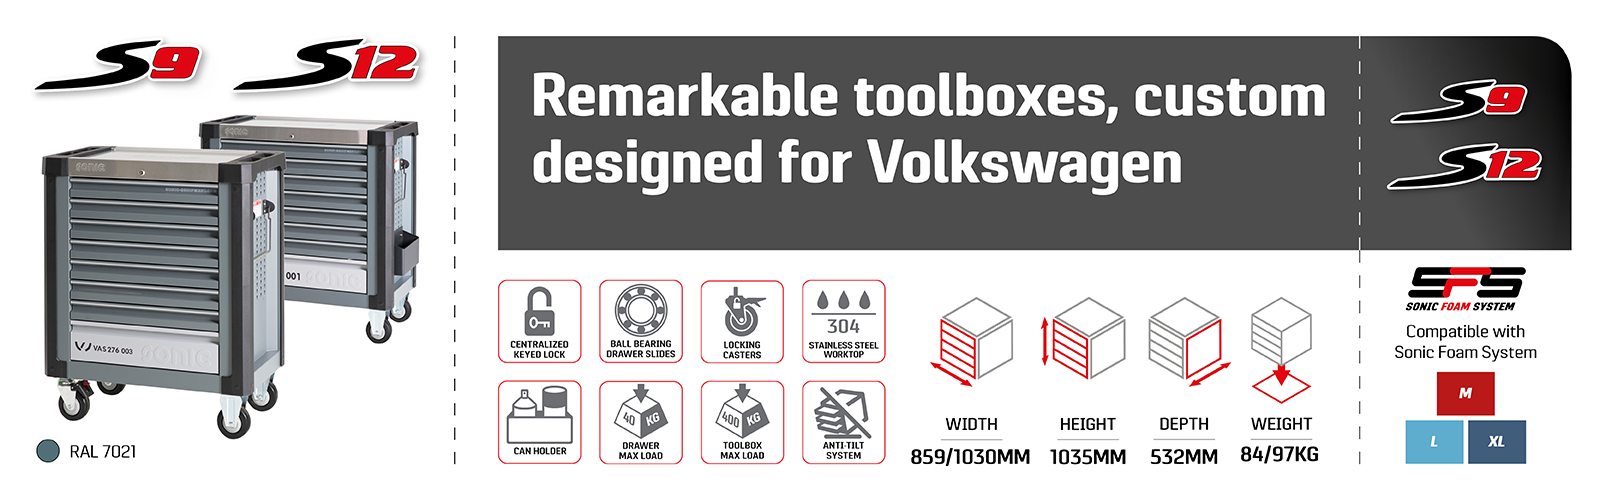 Toolboxes Volkswagen